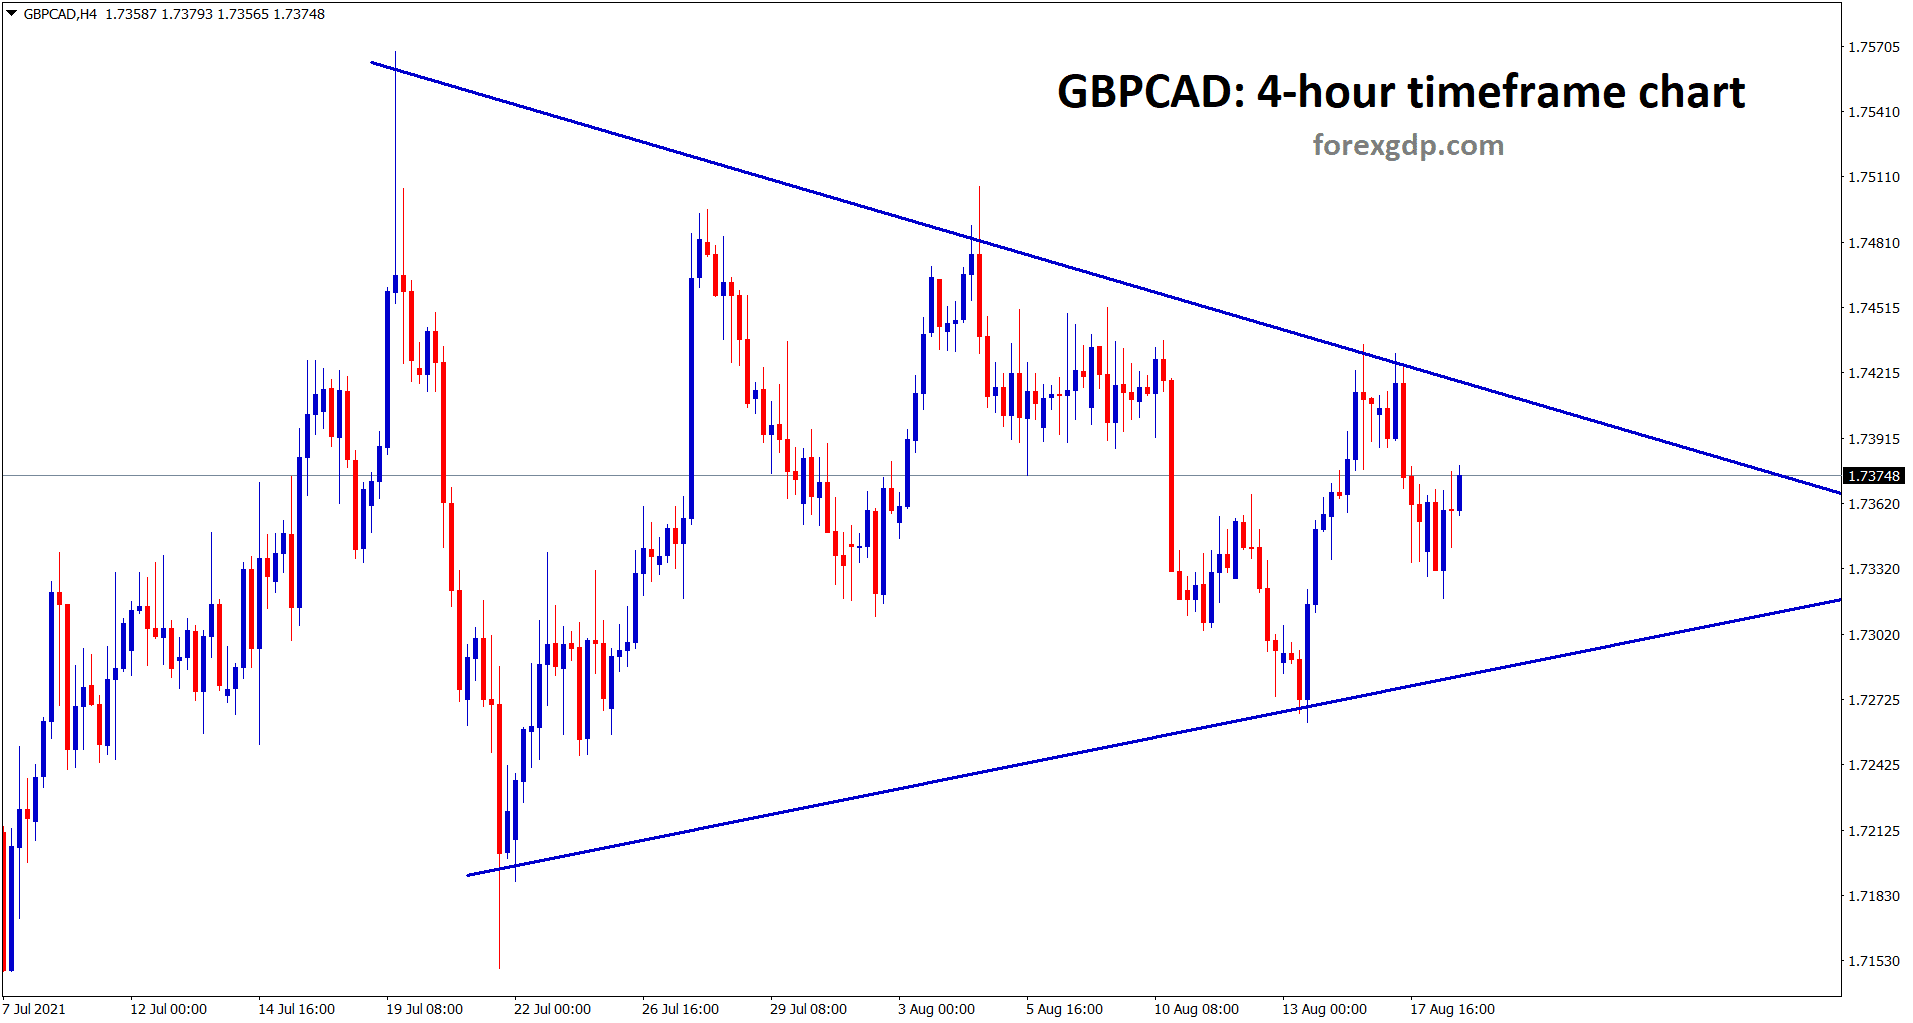 GBPCAD has formed a symmetrical triangle pattern market going to break this triangle soon as it getting narrower.